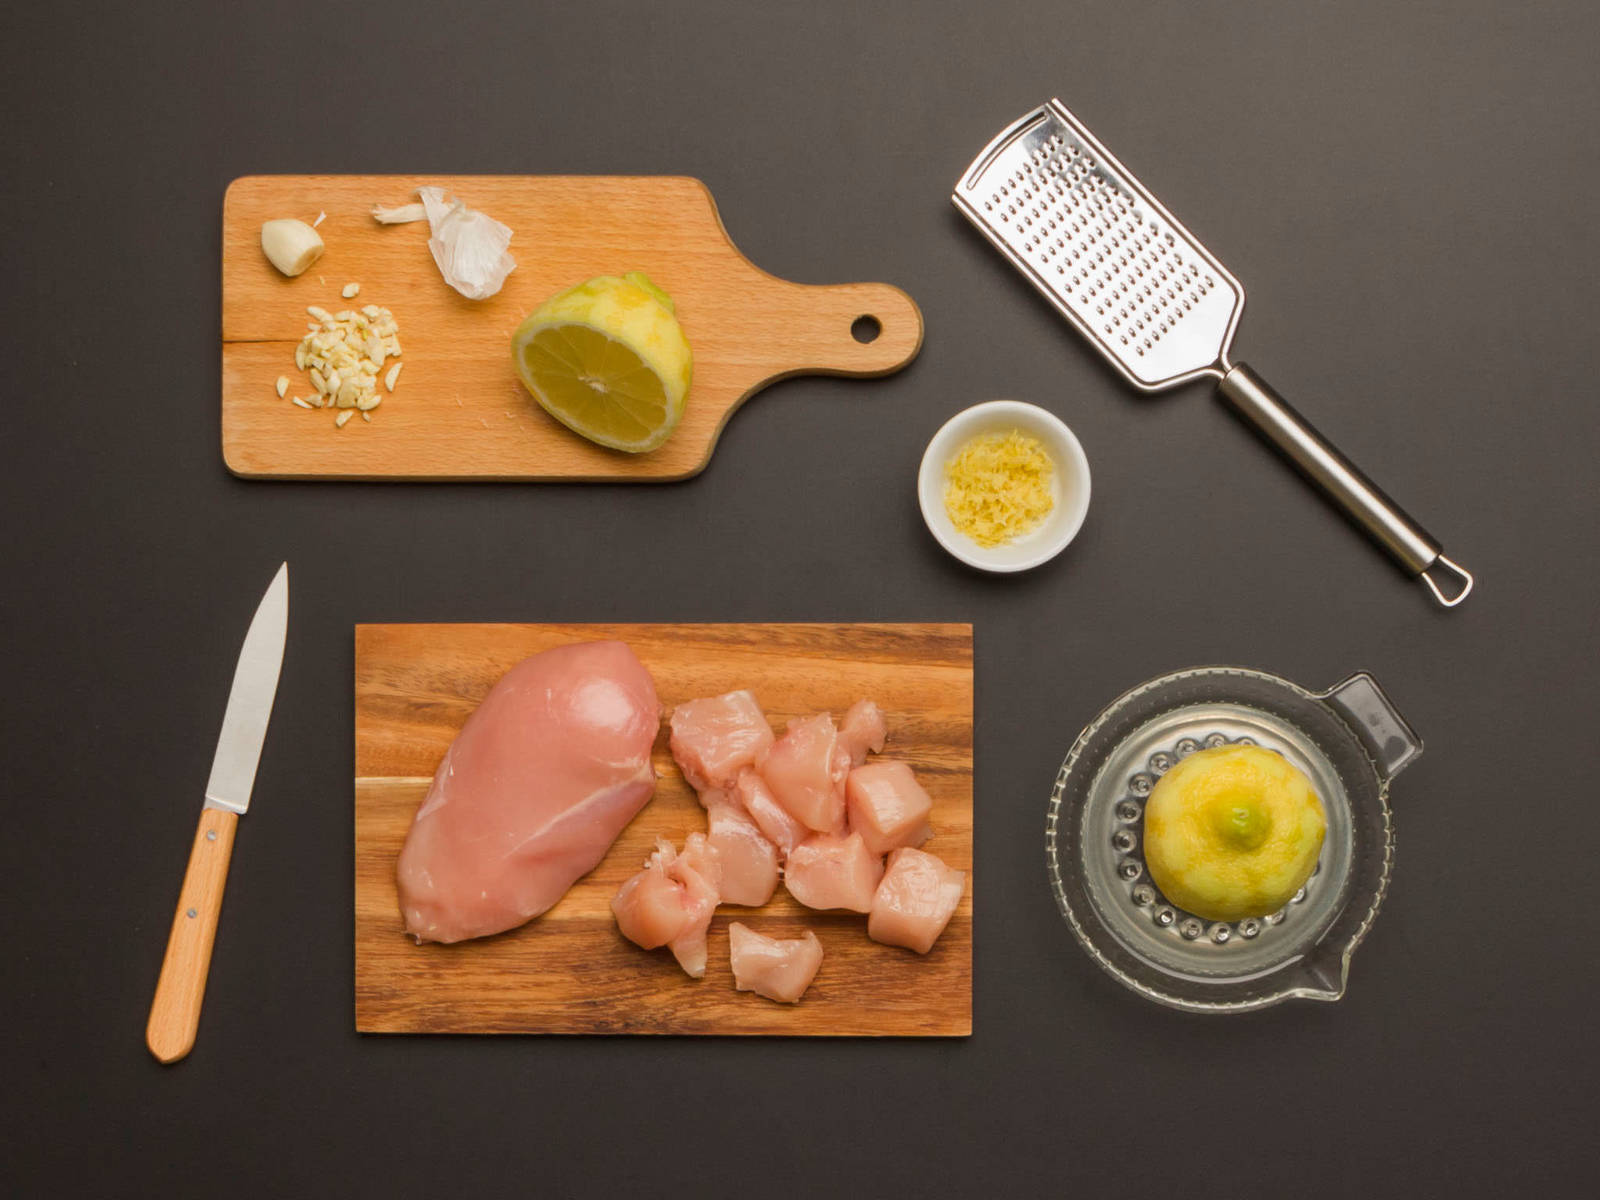 Preheat oven to 200°C/390°F. Peel and finely dice garlic. Grate ginger. Zest and juice lemon. Wash chicken breasts, pat dry, and cut into bite-sized pieces.